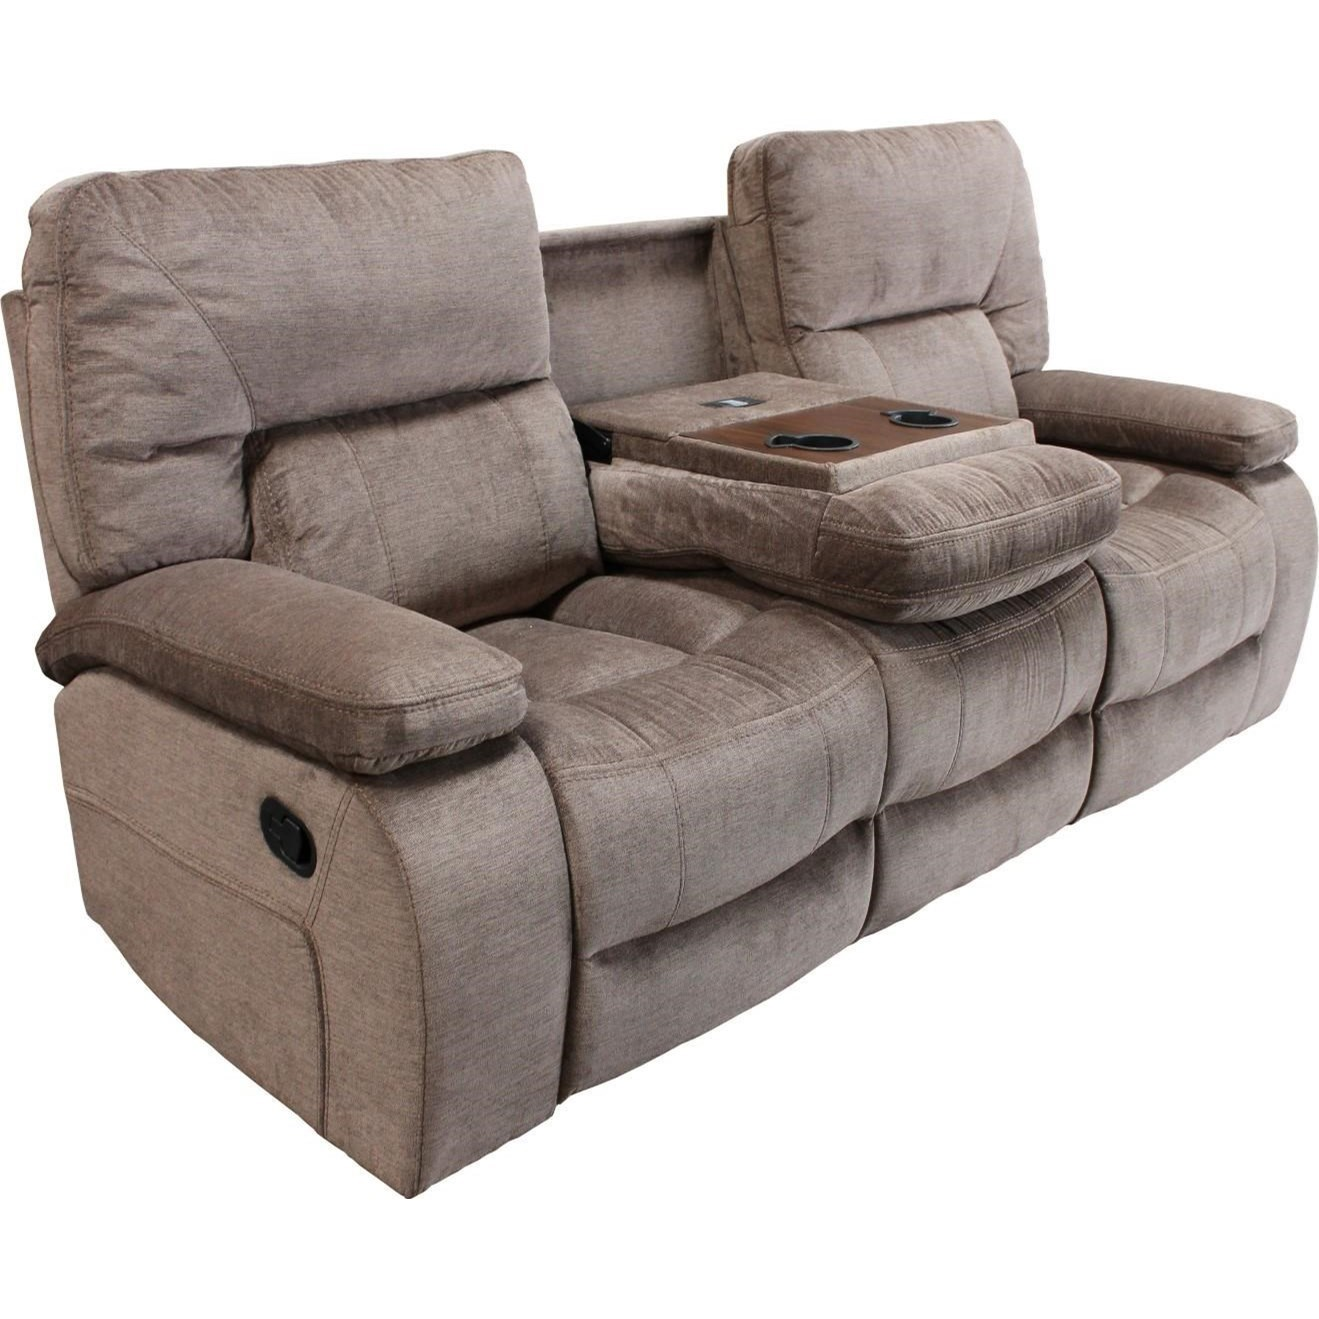 parker living chapman casual dual reclining sofa with drop down center console cupholders. Black Bedroom Furniture Sets. Home Design Ideas